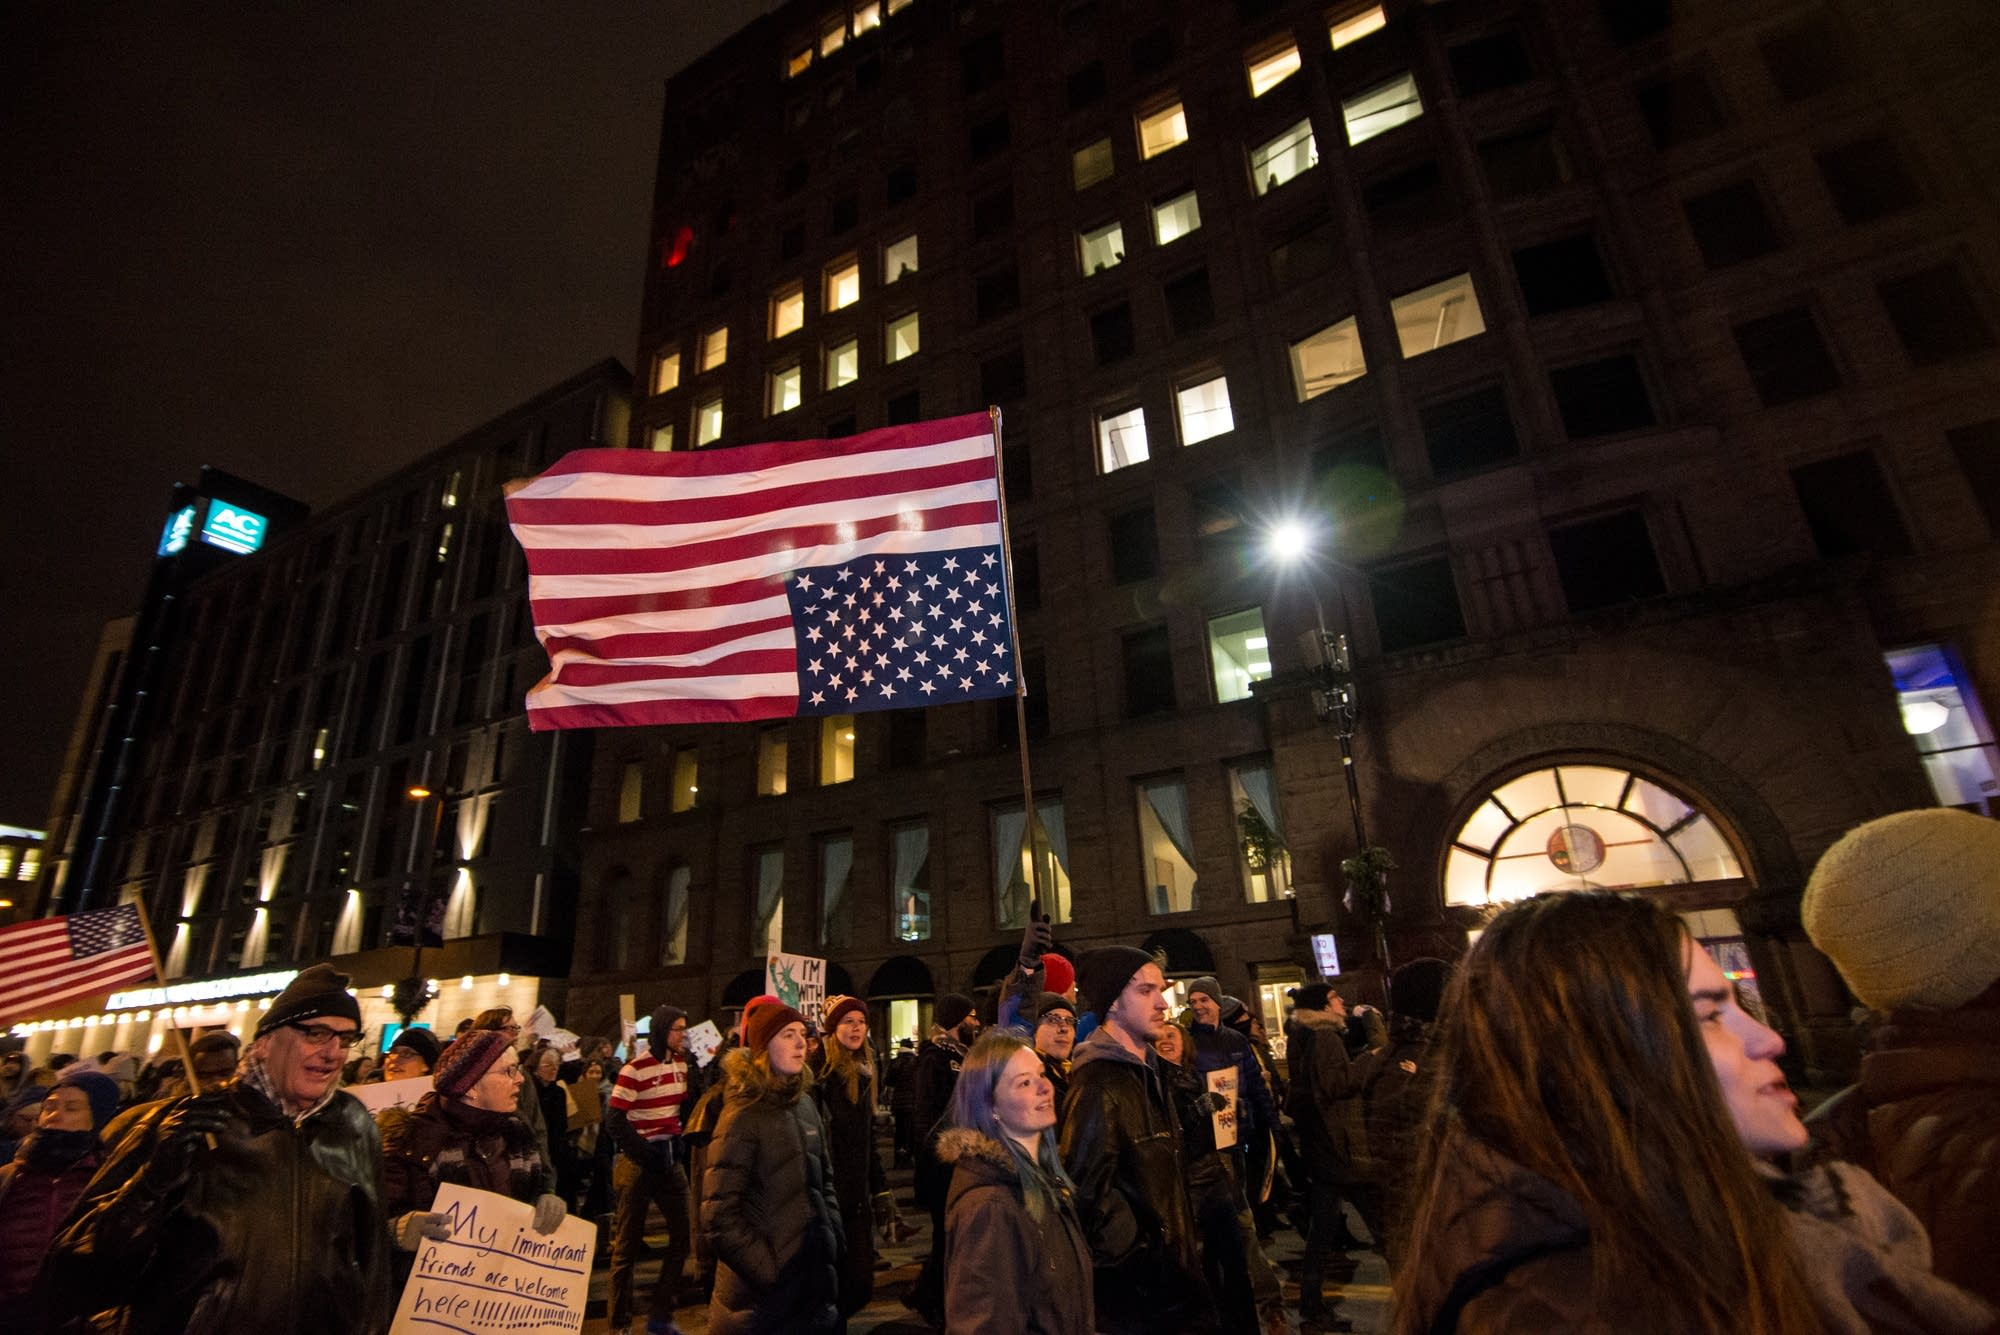 A protester flies an American flag upside down